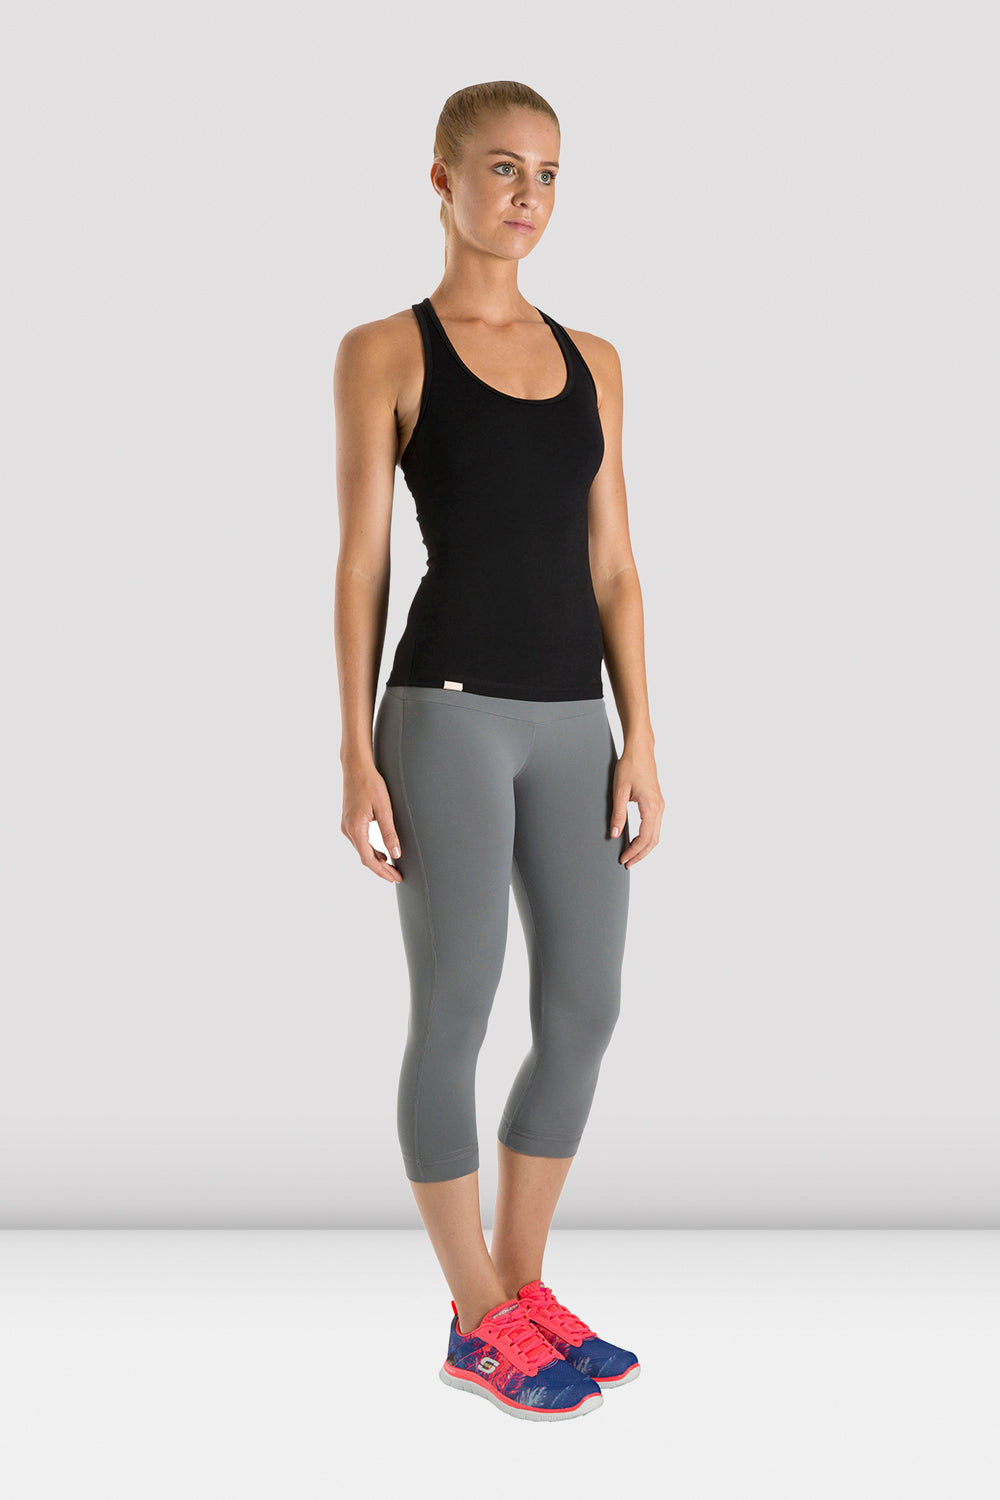 Ladies Racer Back Active Top - BLOCH US